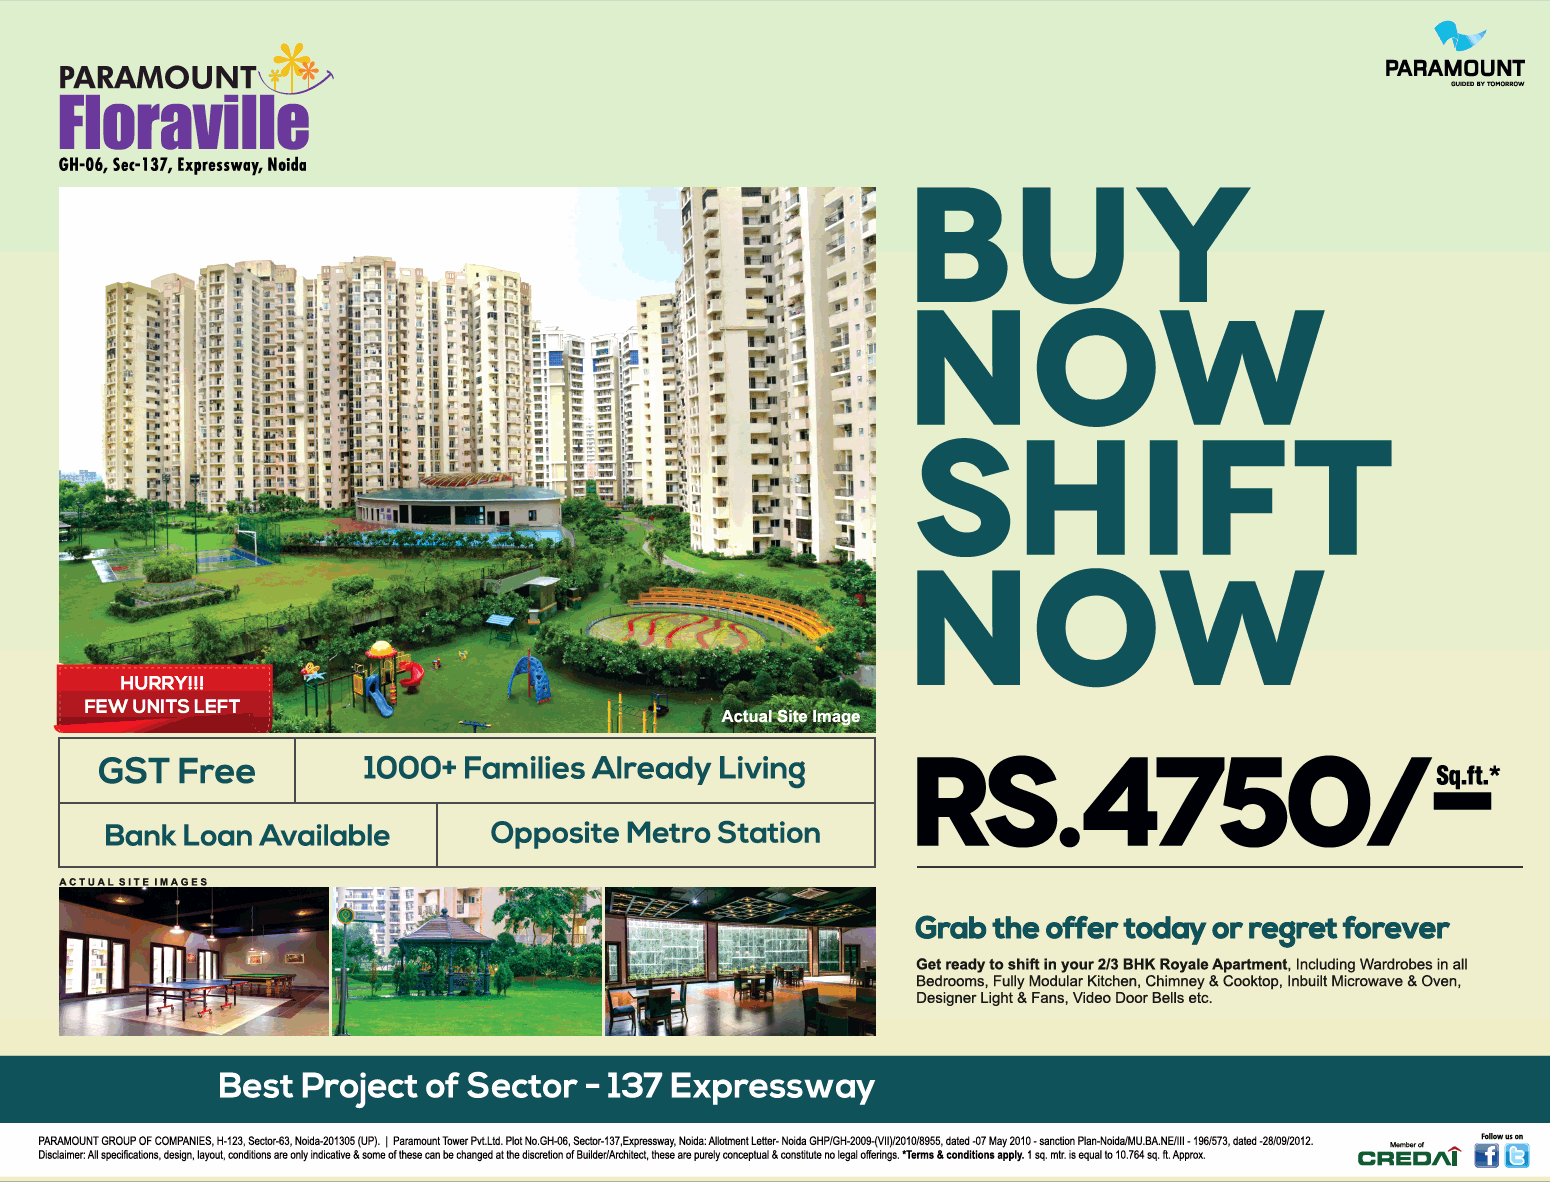 Grab The Offer Today At Just Rs 4750 Per Sqft At Paramount